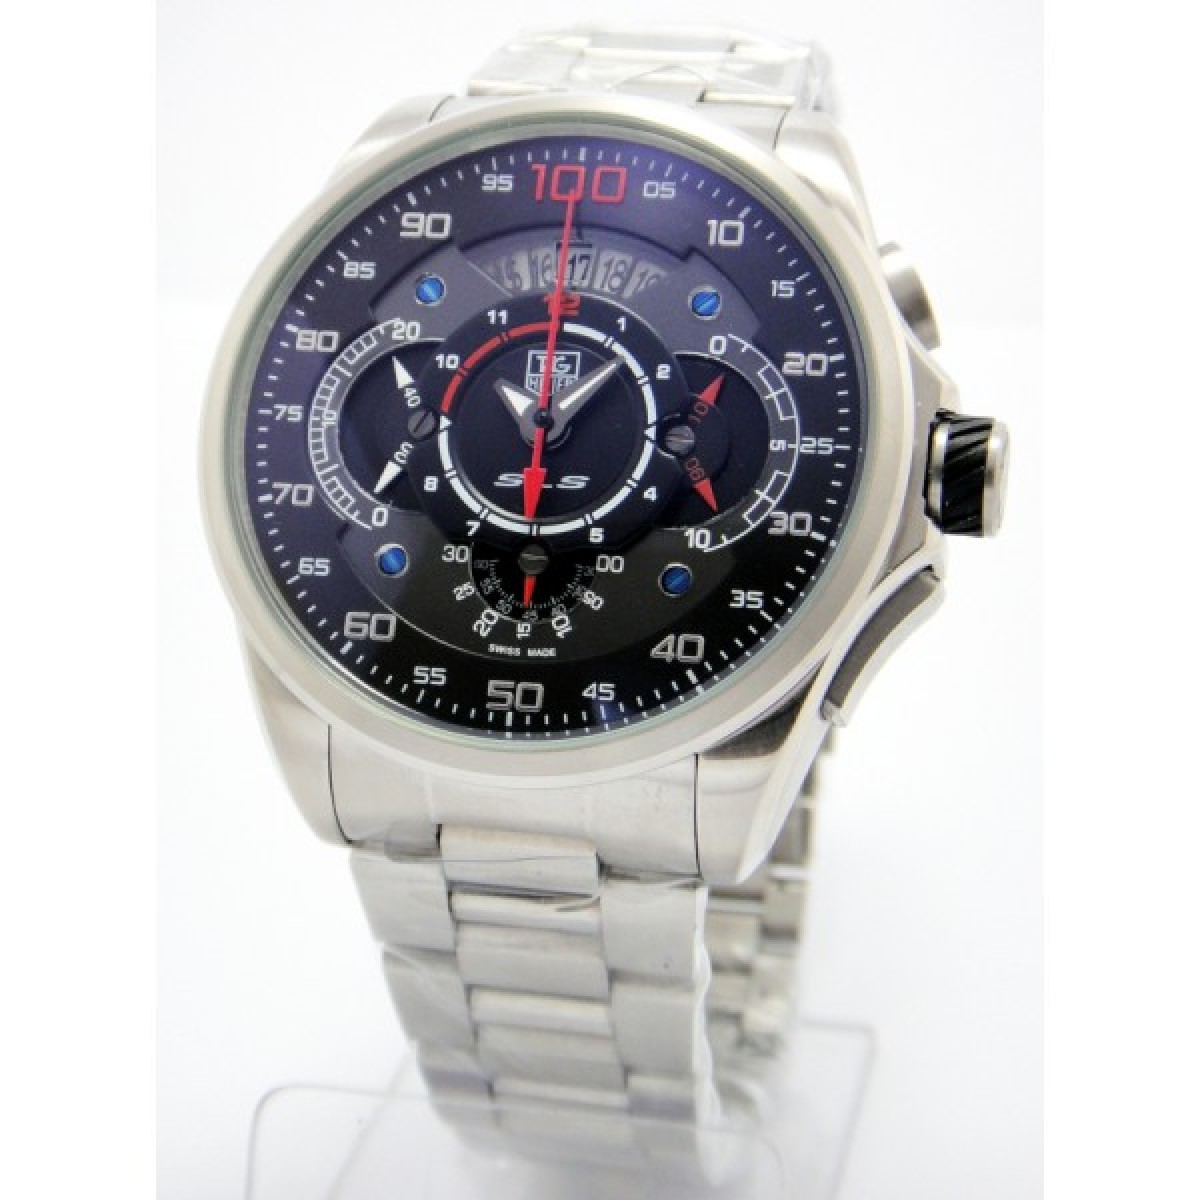 Tag heuer slr mercedes benz watches au for Mercedes benz tag heuer watch price